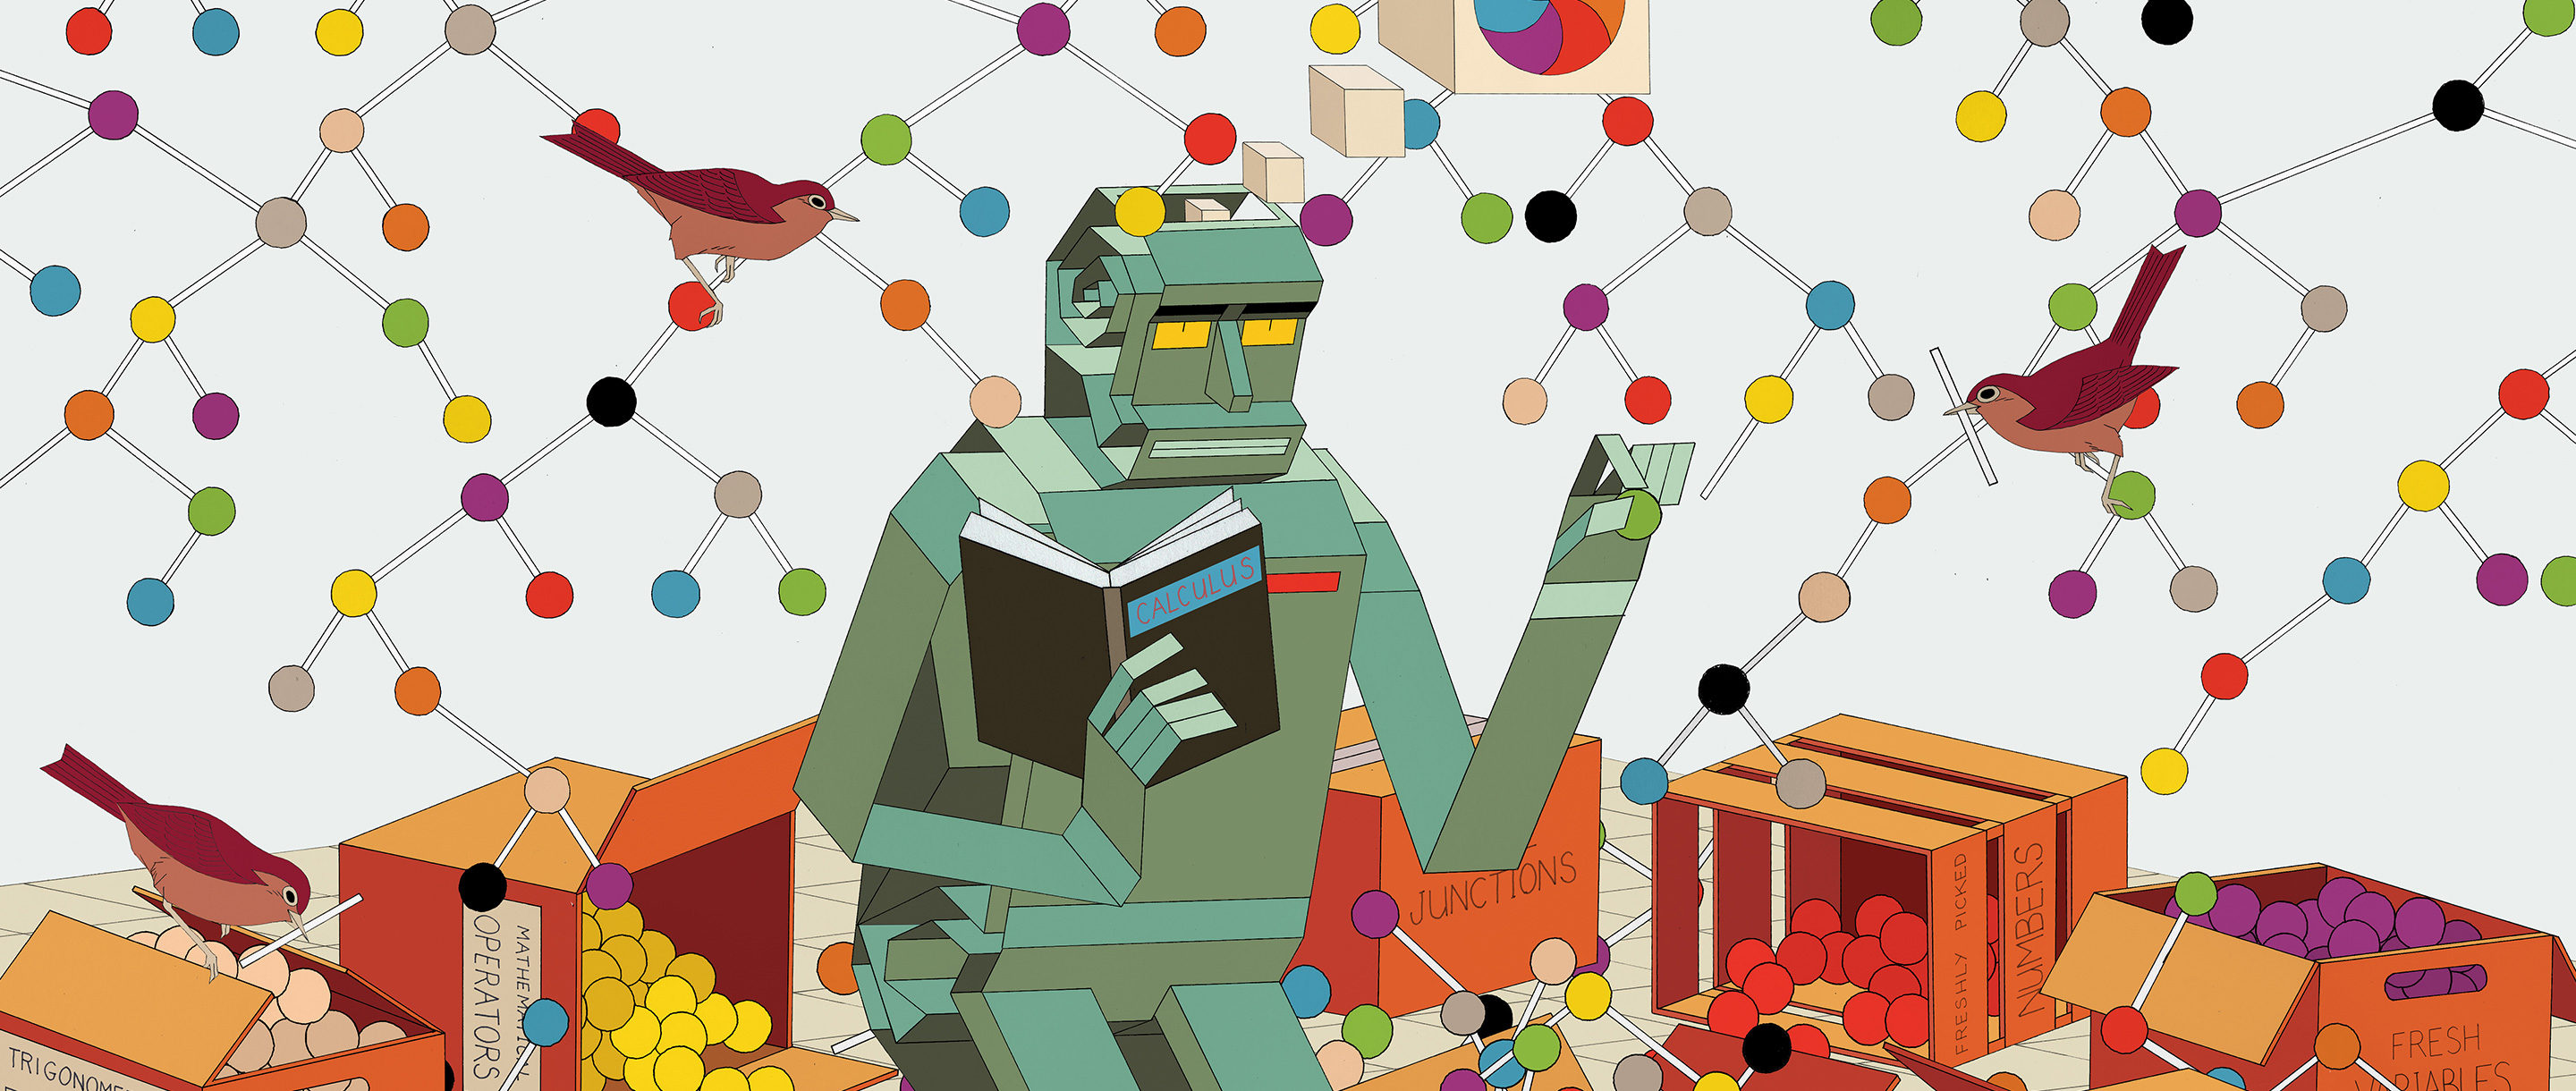 Illustration of a robot translating calculus into branching, tree-like structures